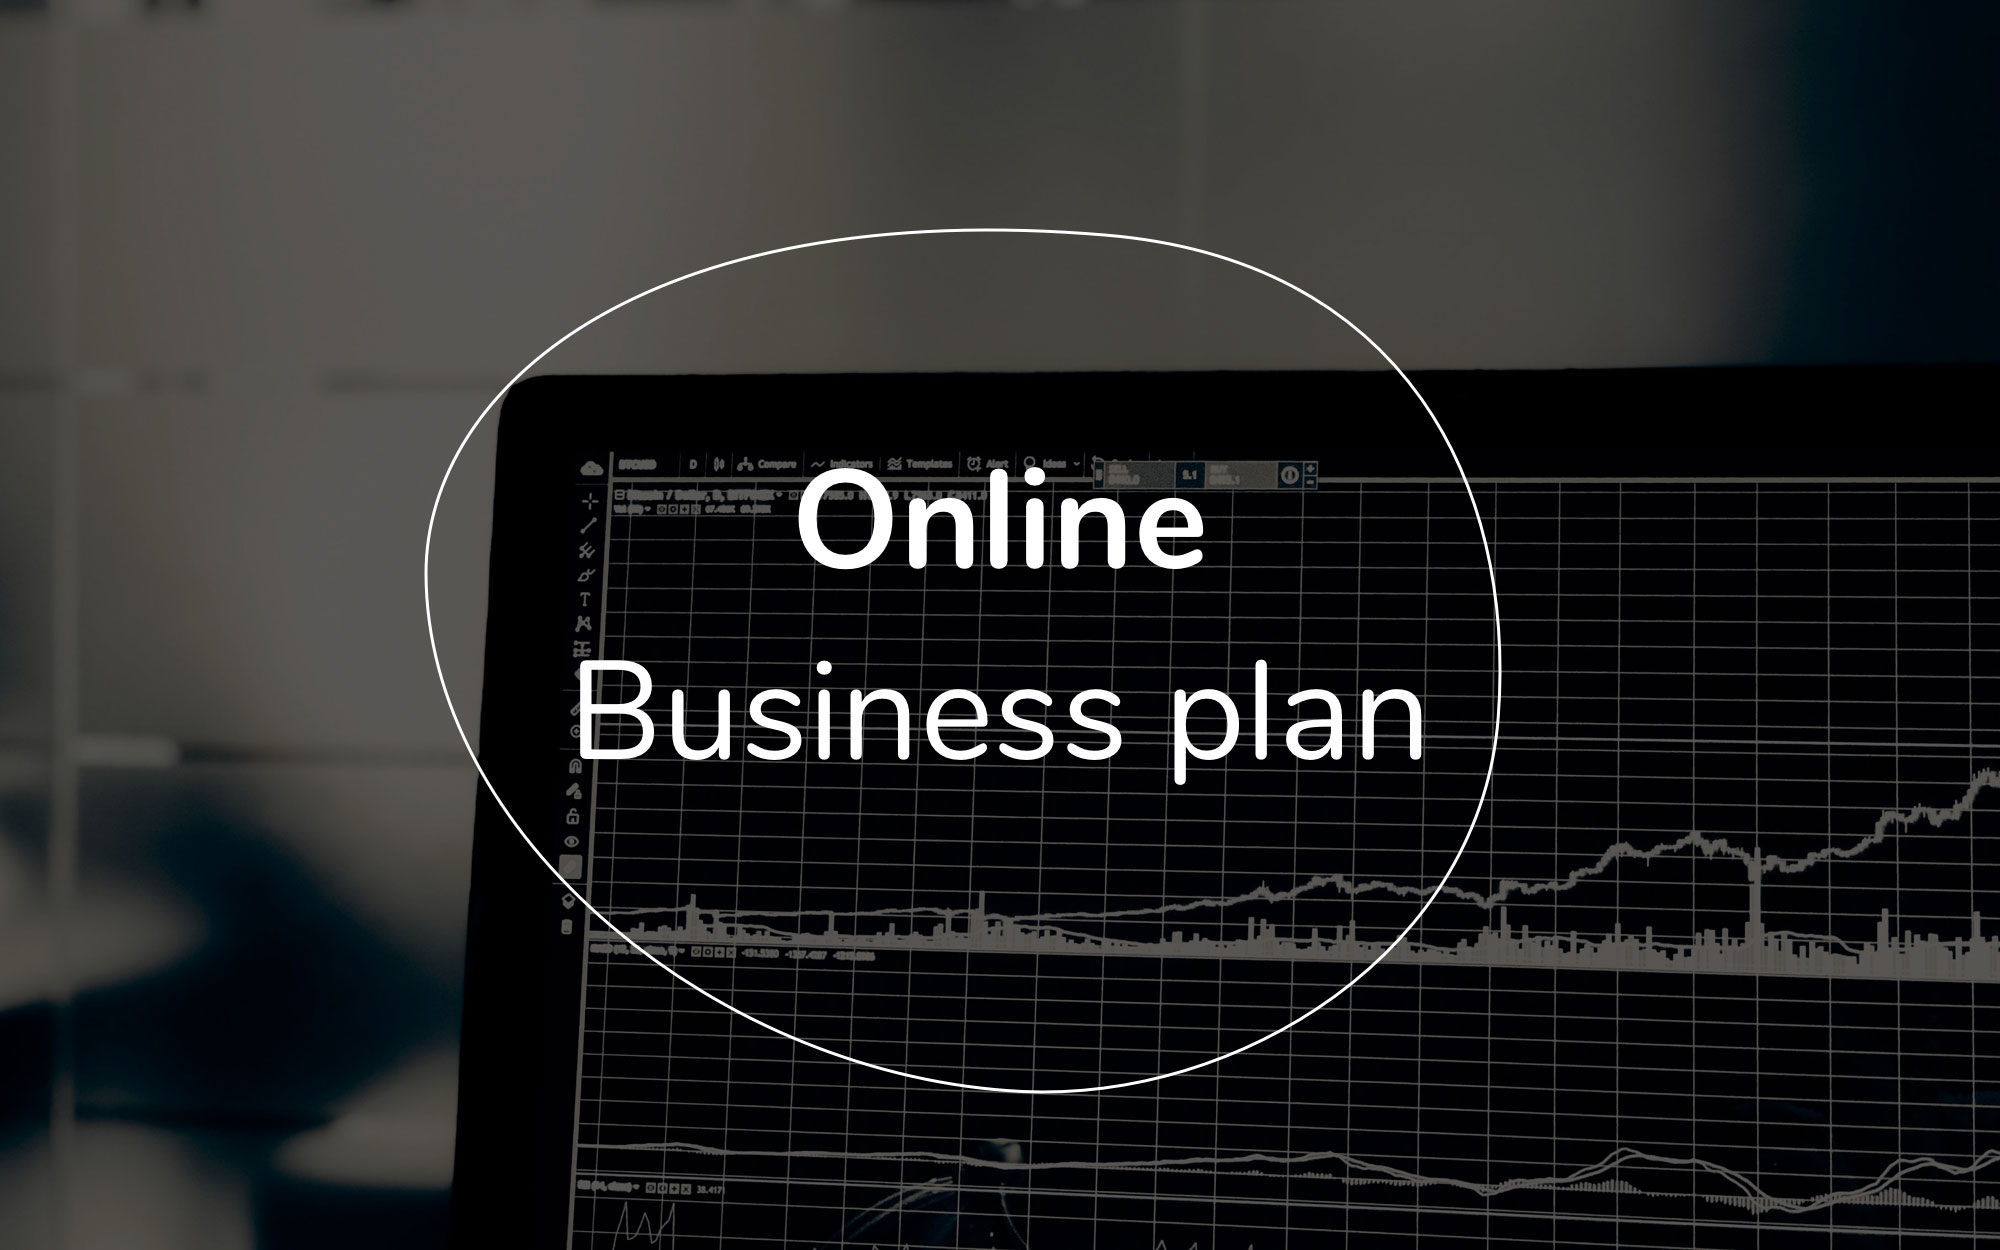 Online business plan template free pdf ppt download slidebean online business plan template free pdf ppt download flashek Images